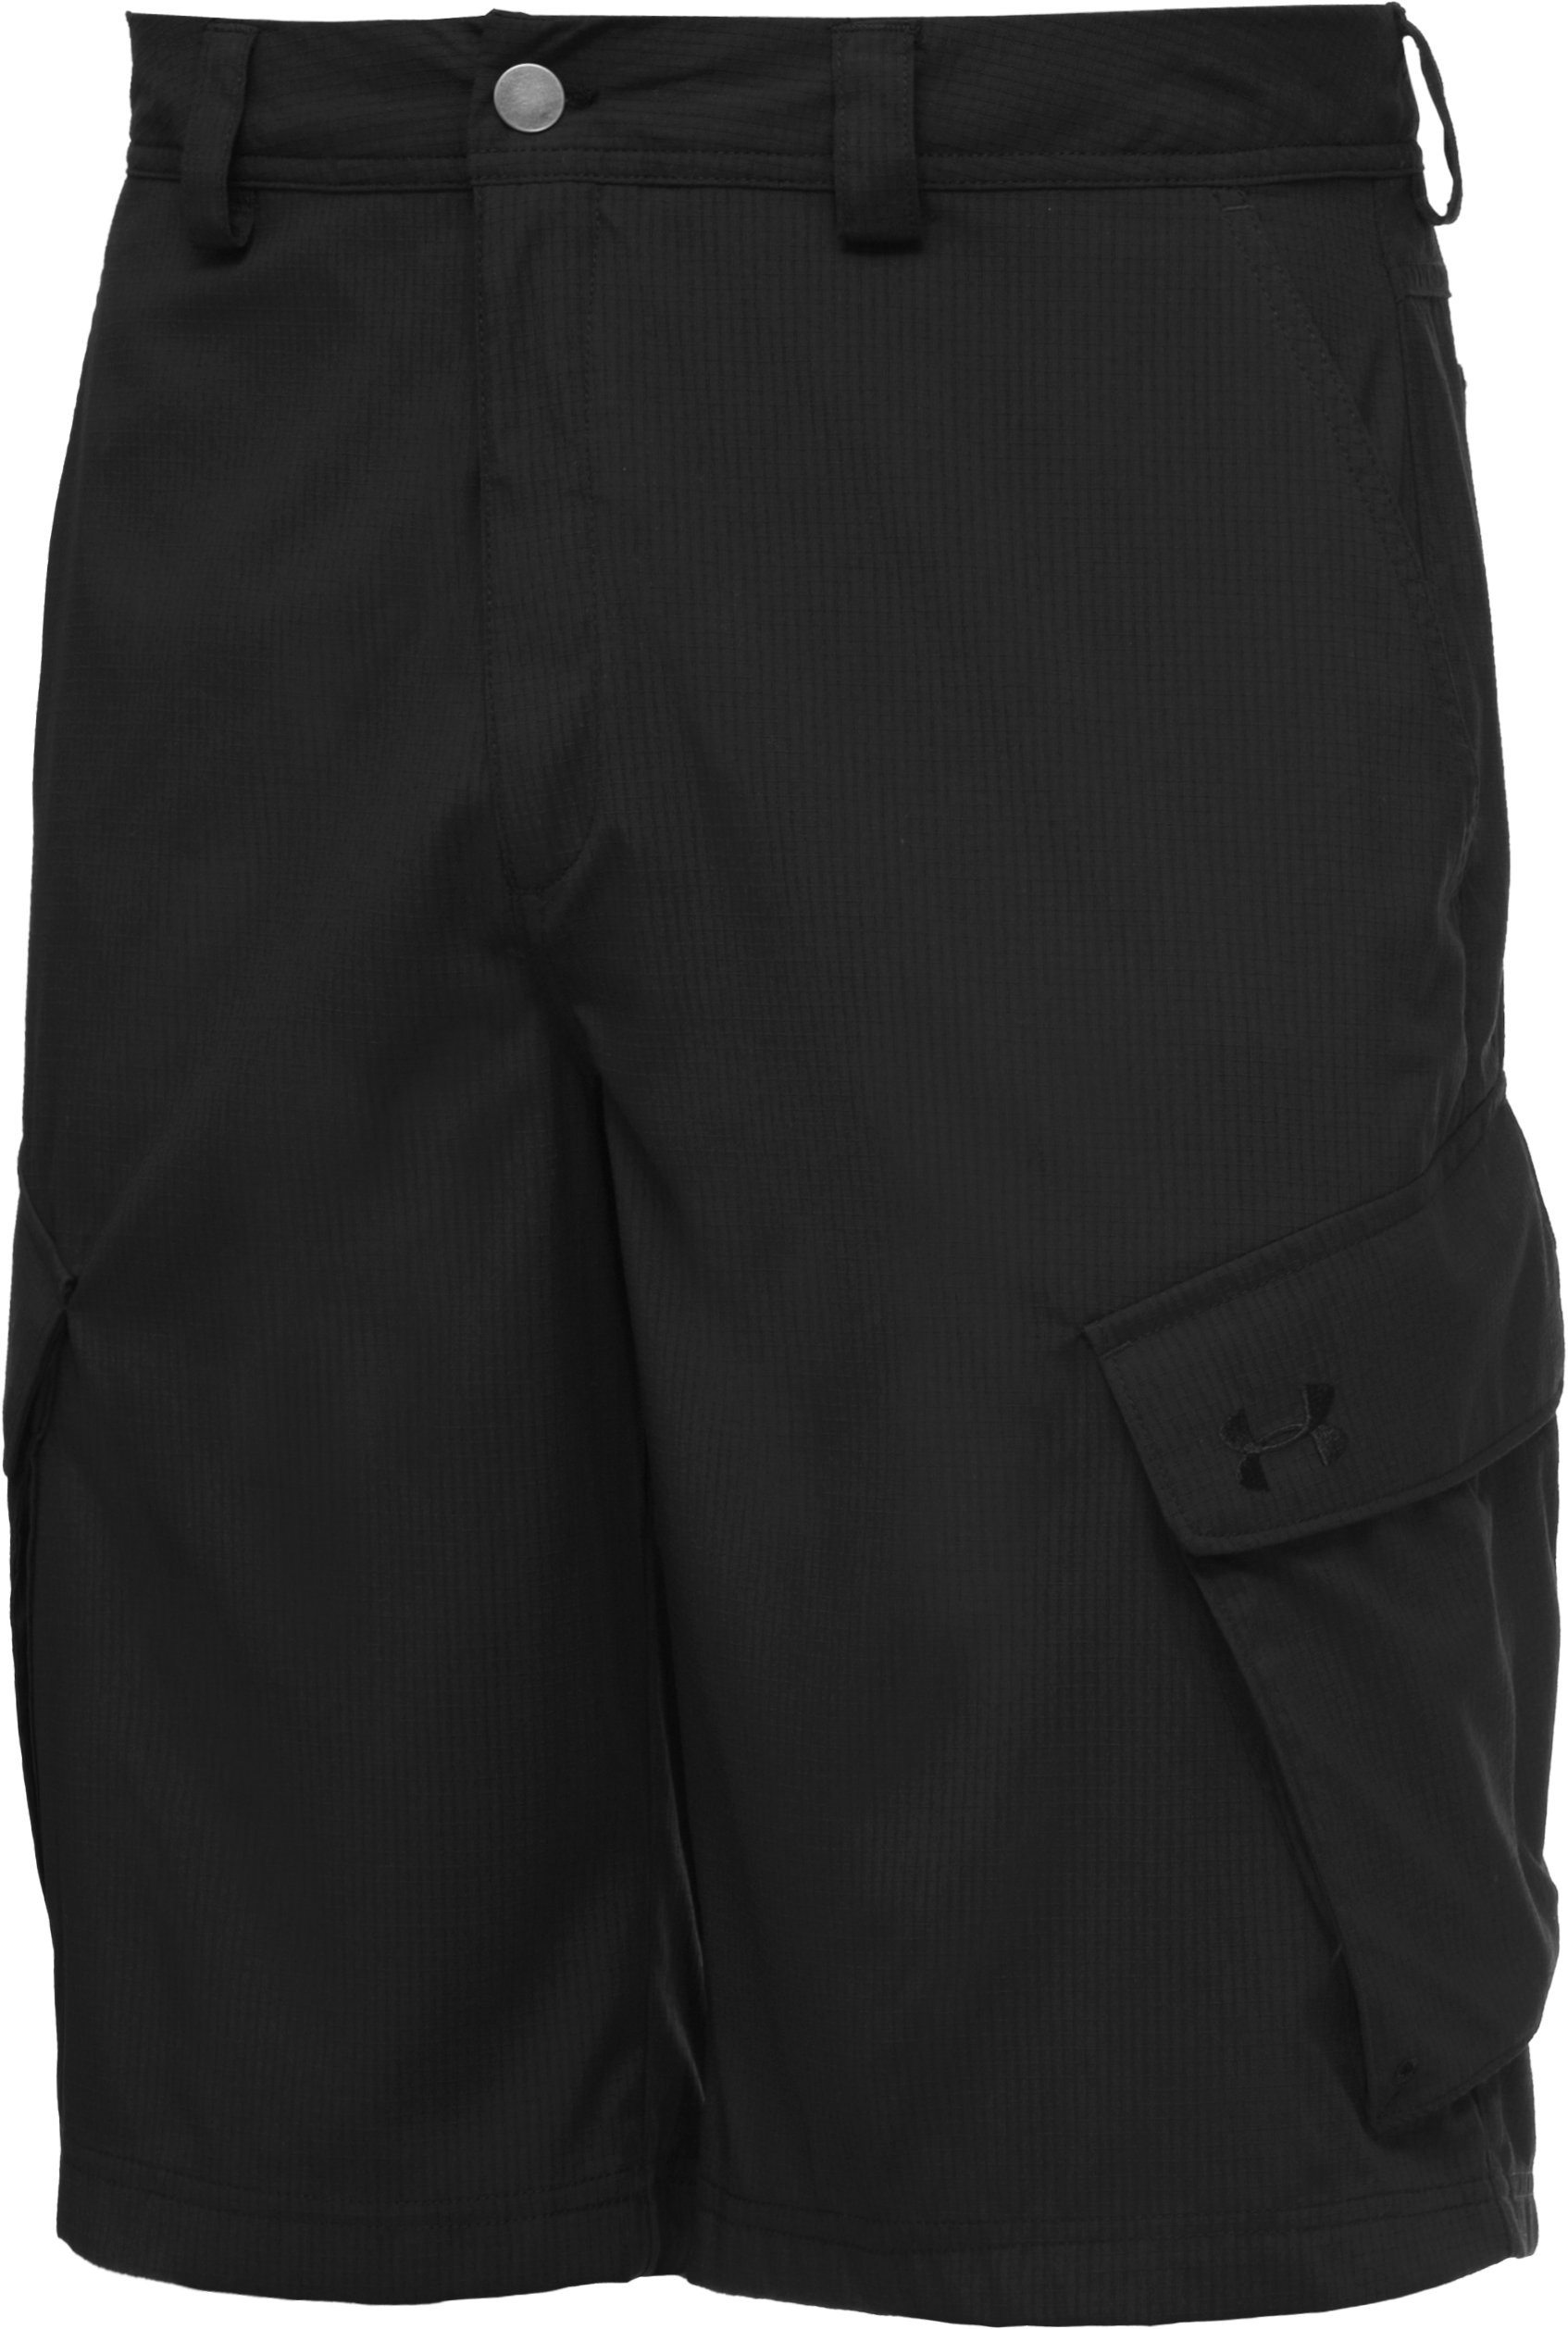 Men's UA Guide III Short, Black , undefined